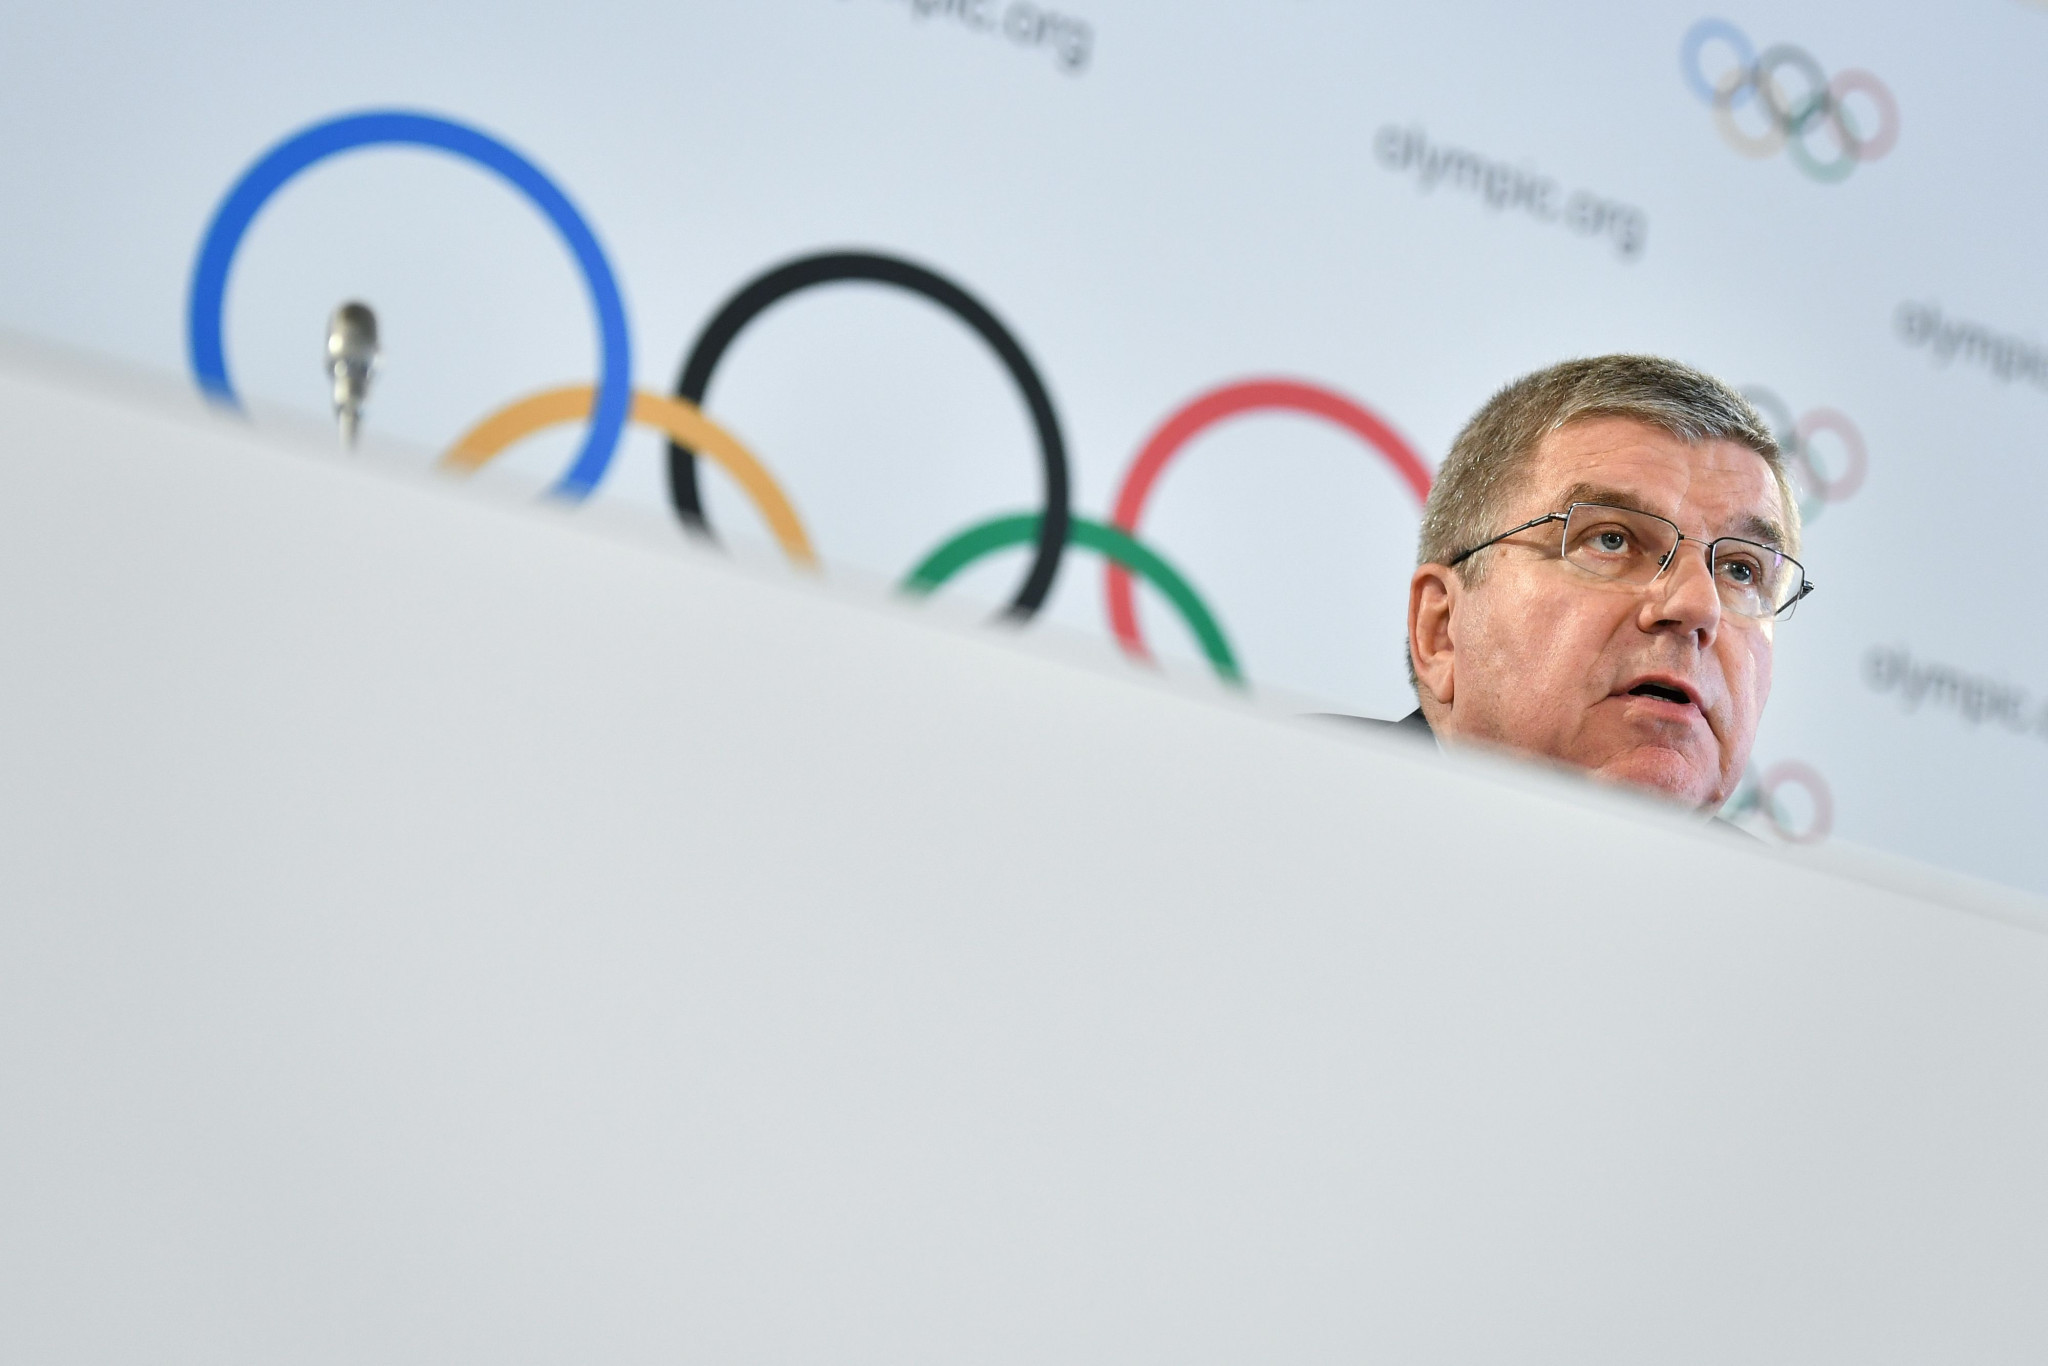 The IOC confirmed additions of new disciplines to the programme last week ©Getty Images